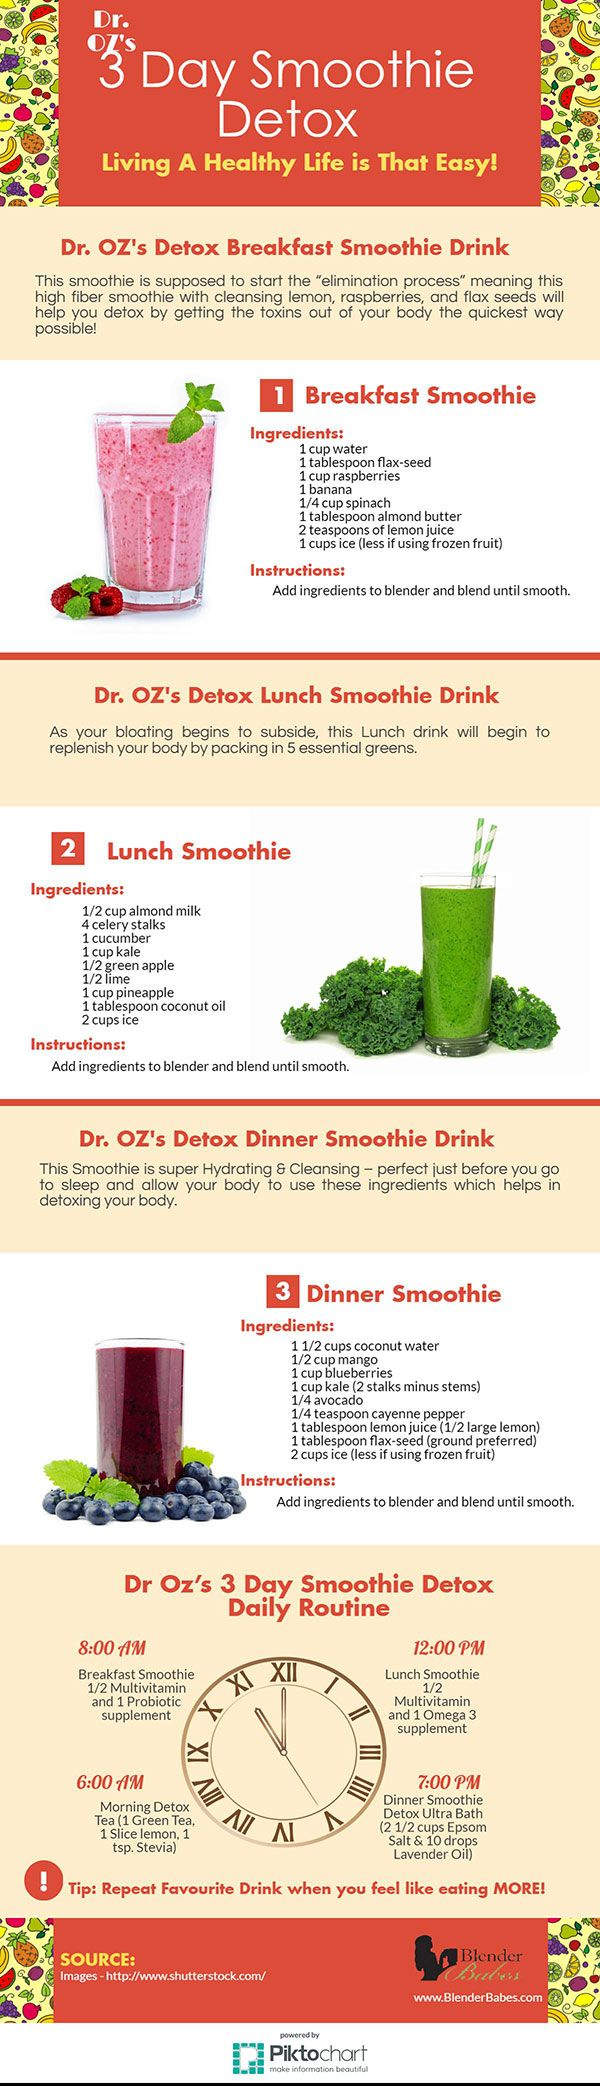 Need A Quick Reboot Try Dr Oz S 3 Day Detox Smoothie Cleanse Detox Lunch Healthy Detox Cleanse Detox Smoothie